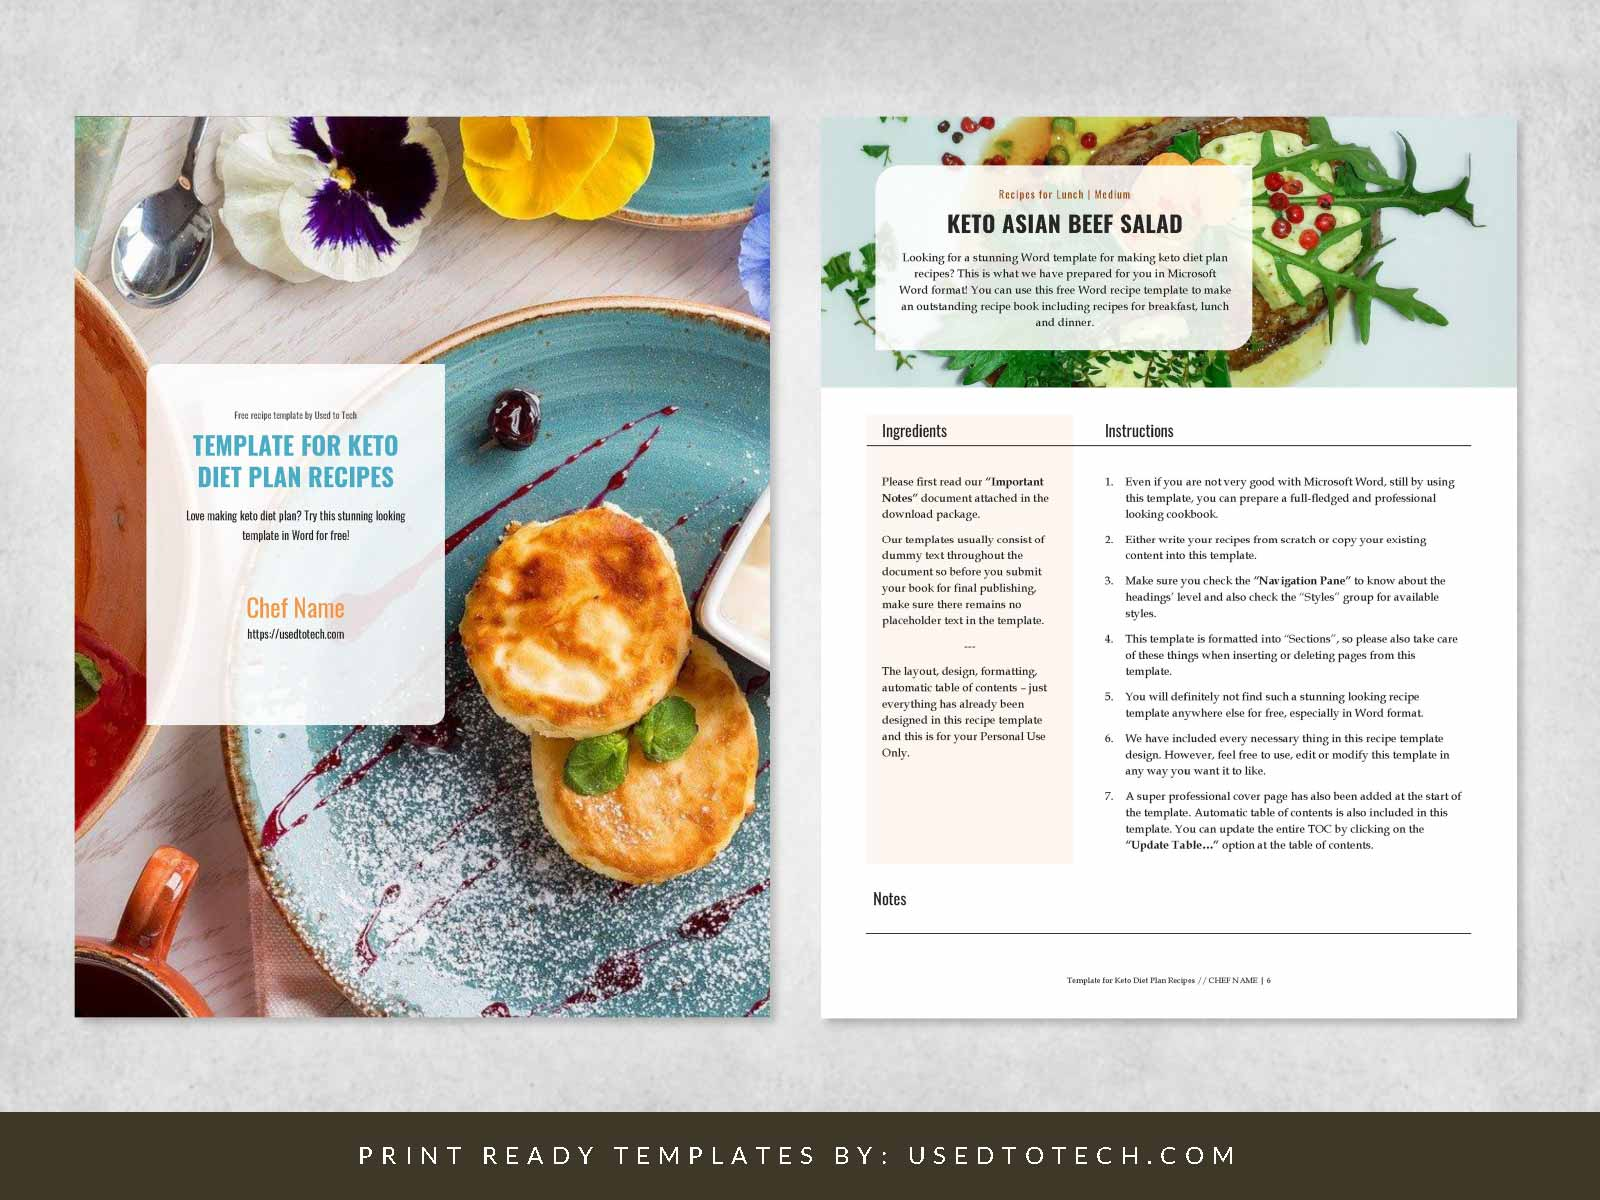 Free Word template for Keto diet plan recipes